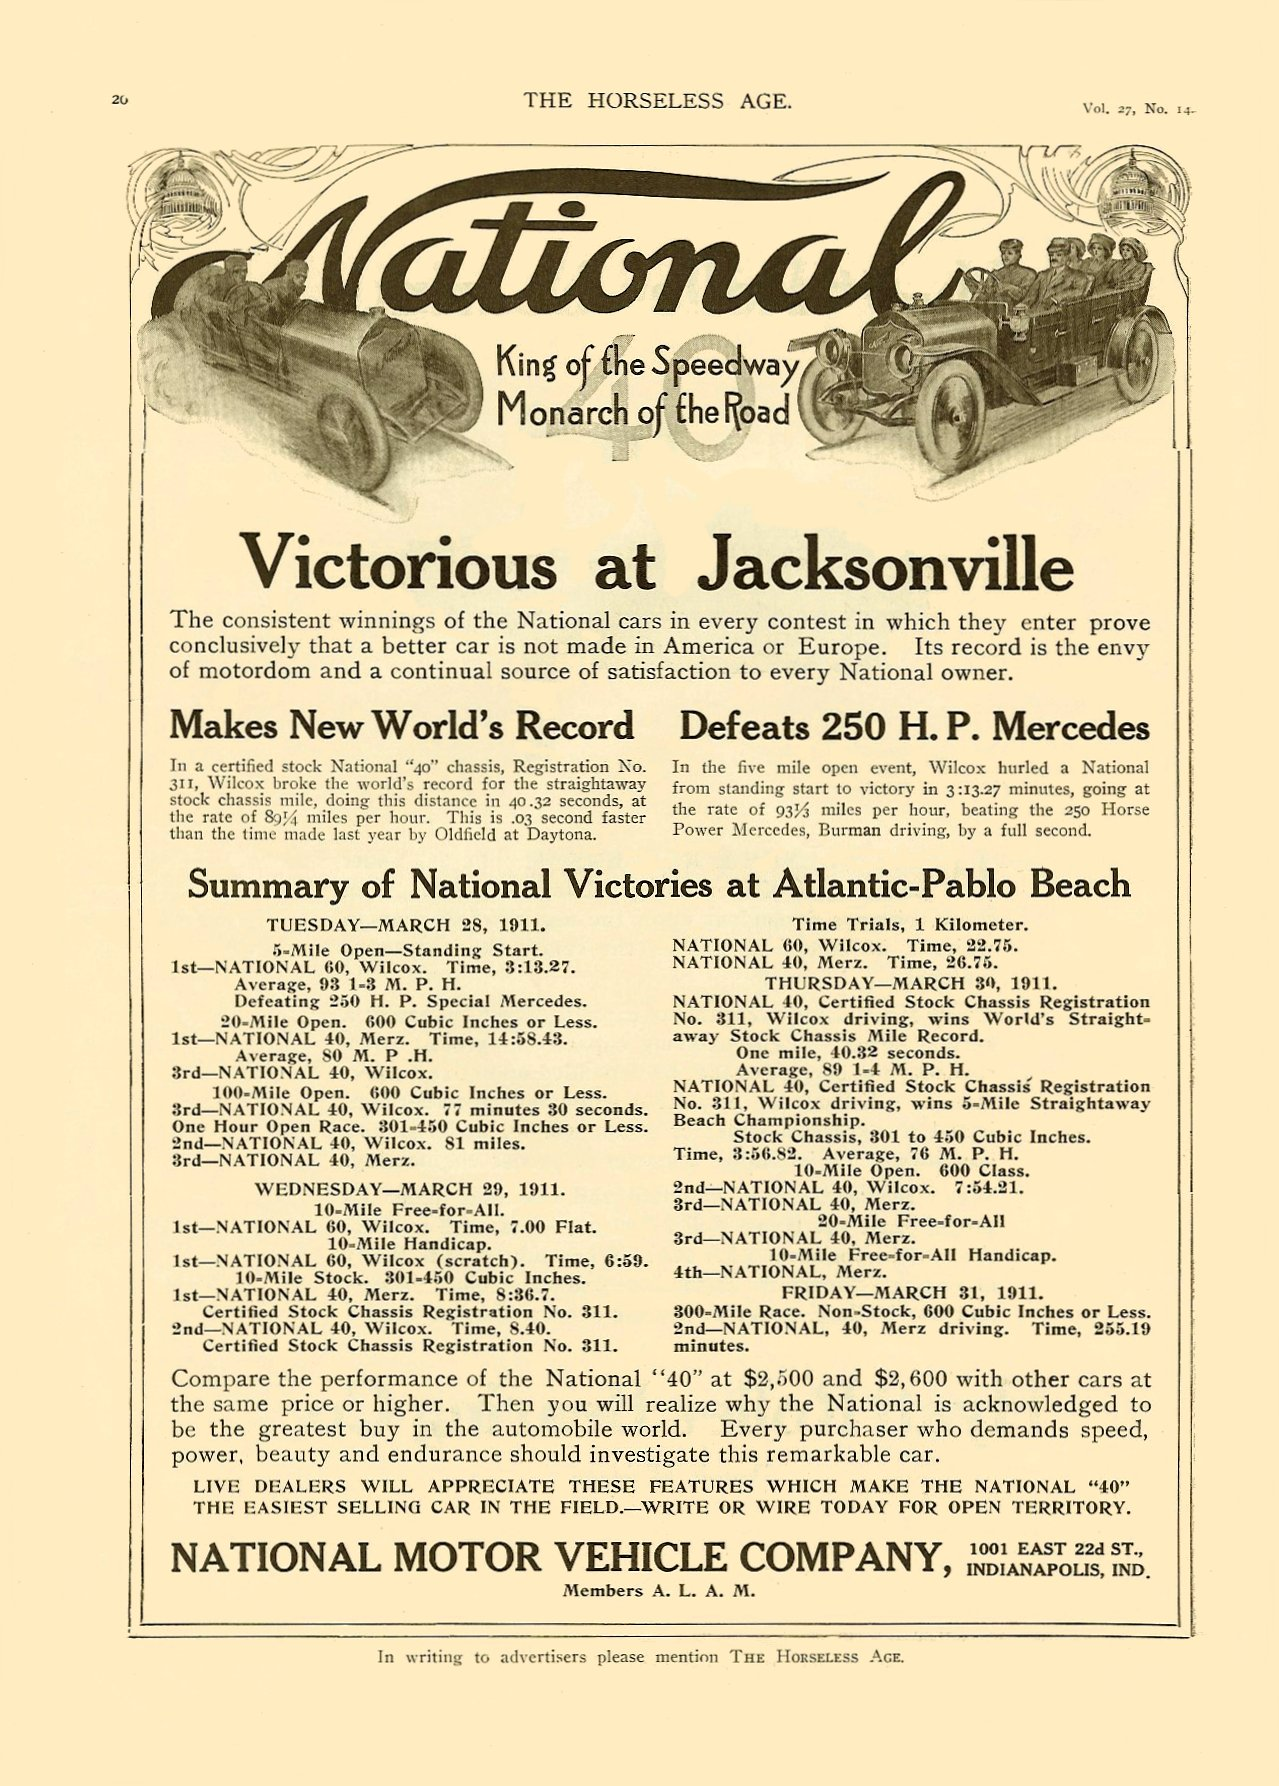 """1911 4 3 NATIONAL National """"Victorious at Jacksonville"""" The Horseless Age Vol. 27 No. 14 April 3, 1911 8.5″x12″ page 20"""